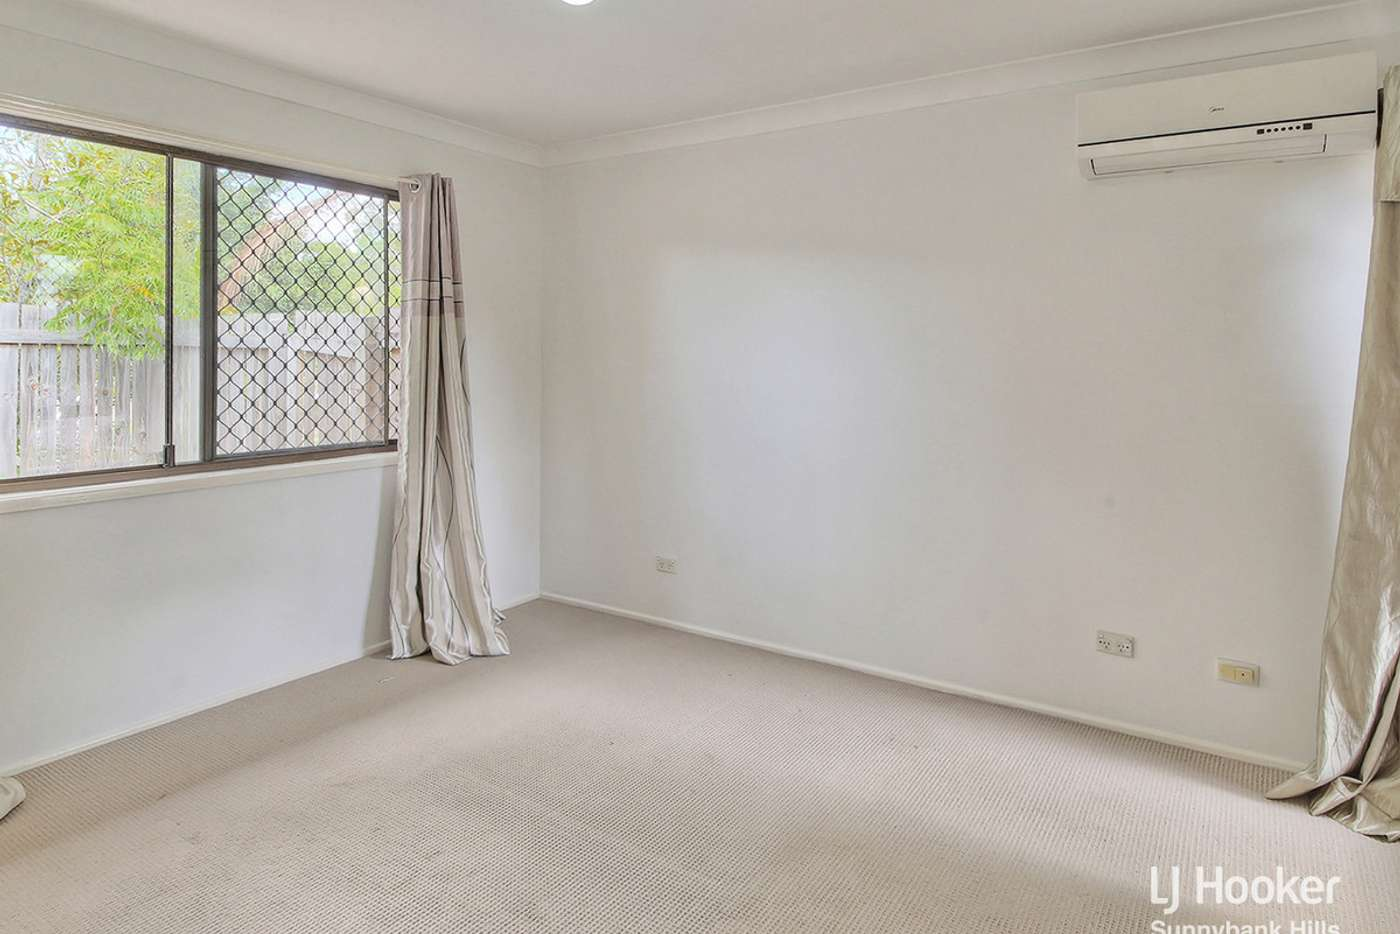 Sixth view of Homely house listing, 1 Fairmont Street, Runcorn QLD 4113